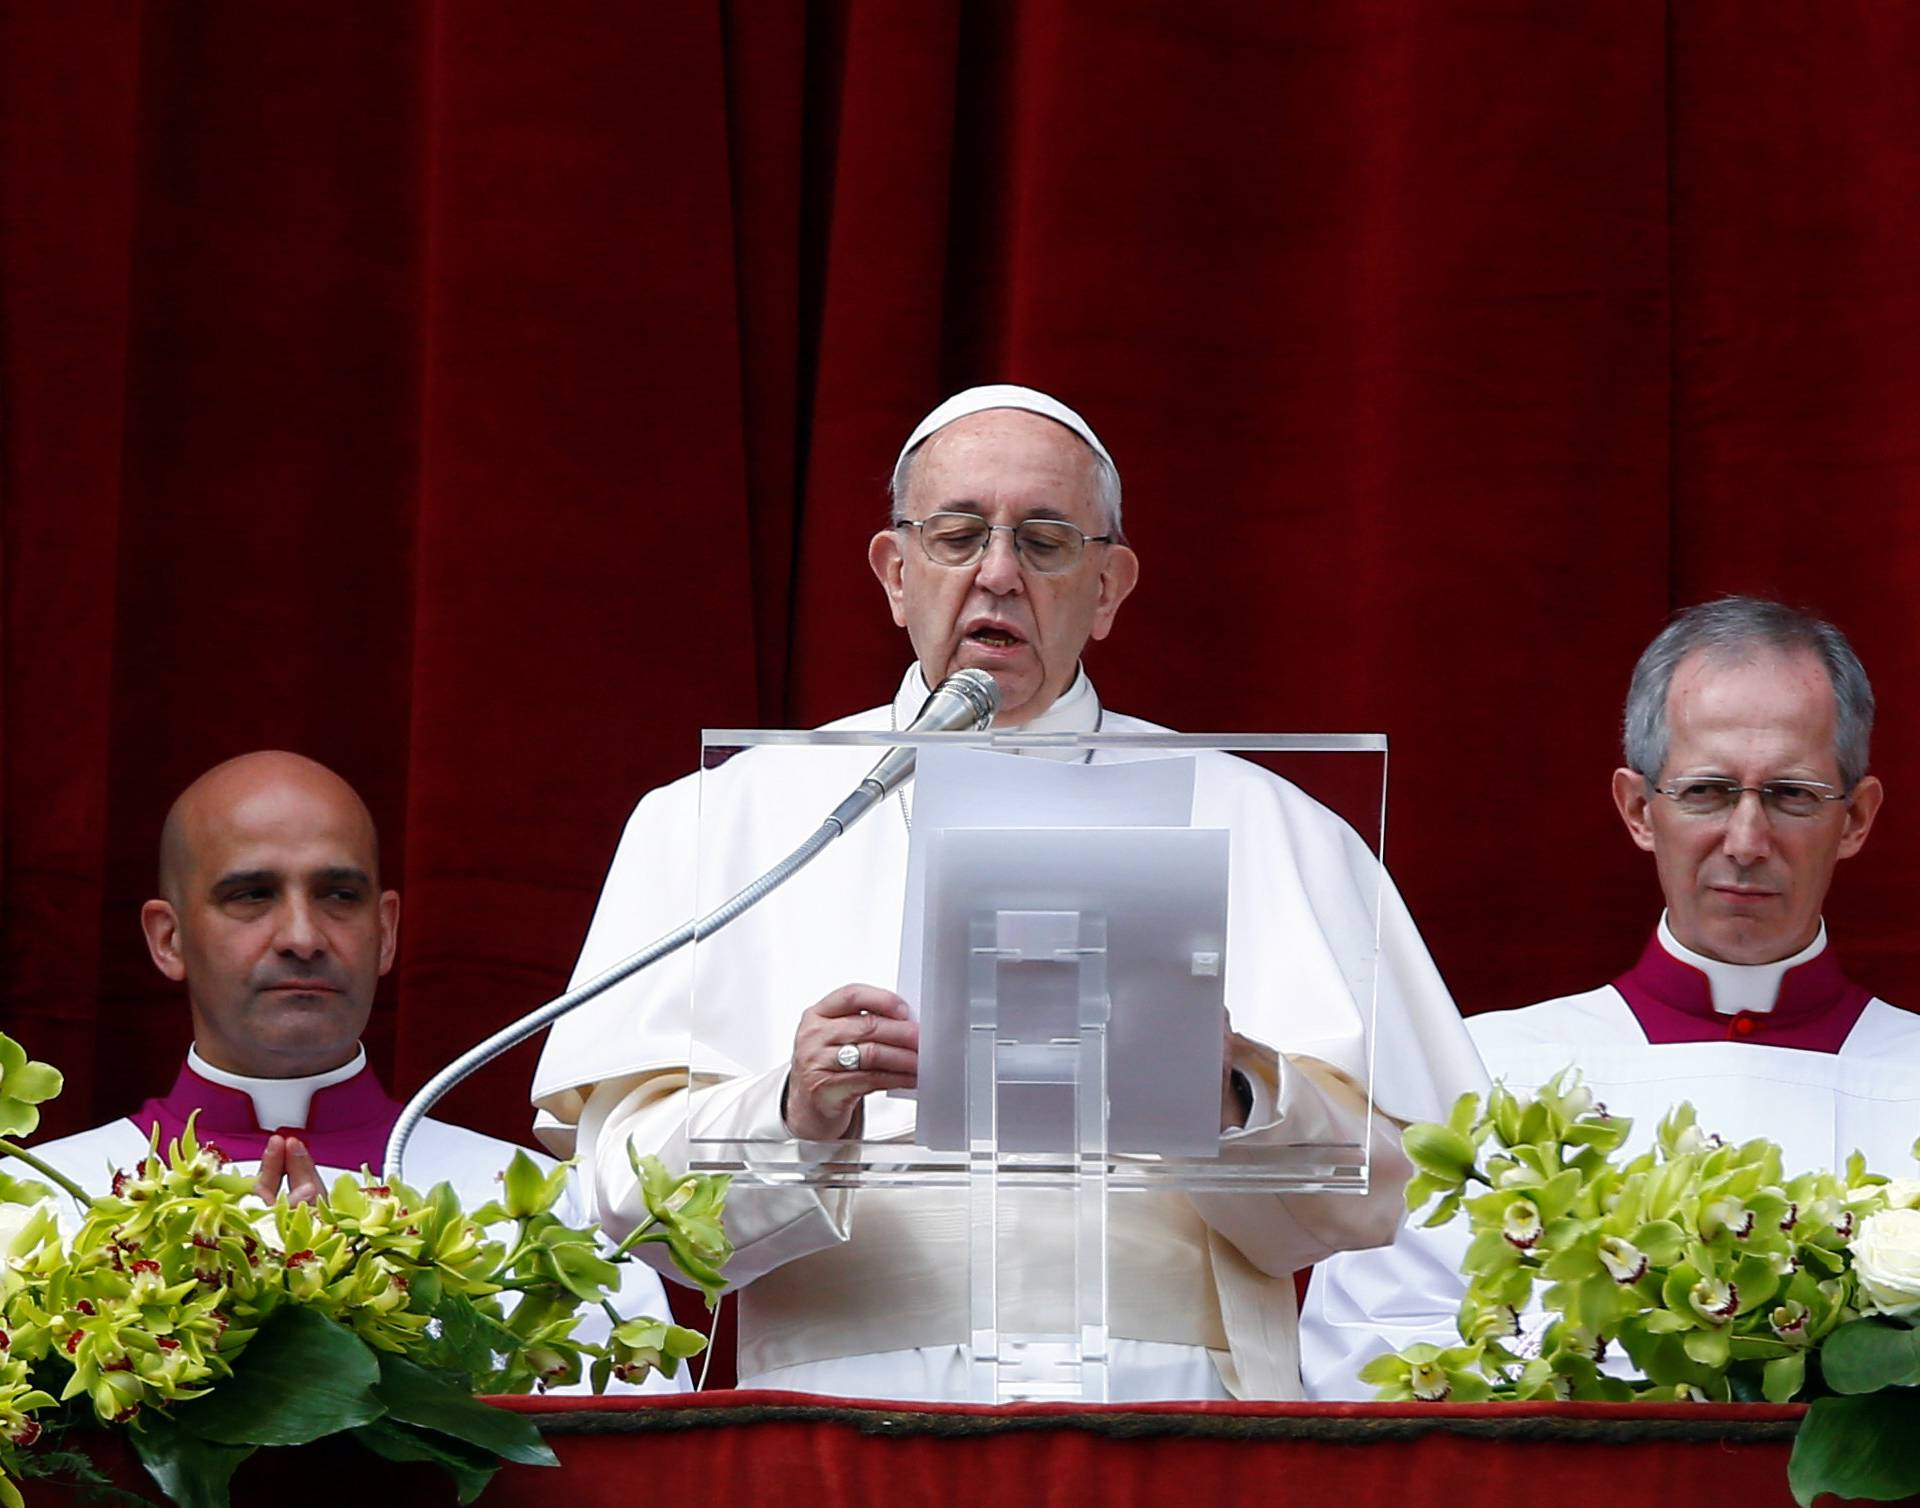 Pope Francis delivers his Easter message in the Urbi et Orbi (to the city and the world) address from the balcony overlooking St. Peter's Square at the Vatican